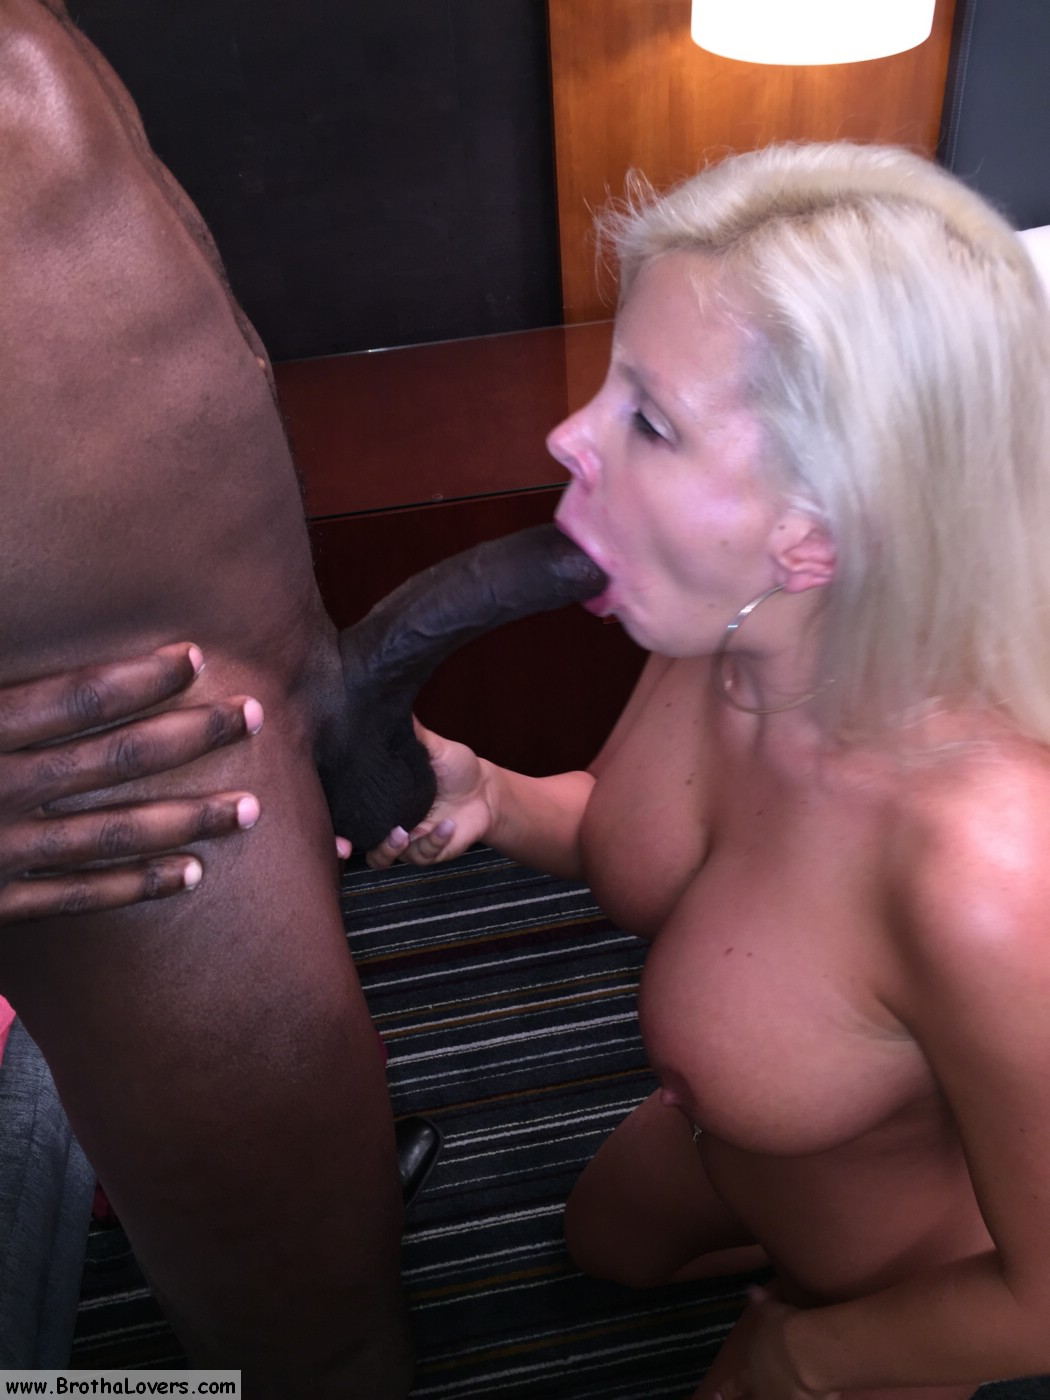 holly-dangelo-interracial-free-asian-cocksuckers-pictures